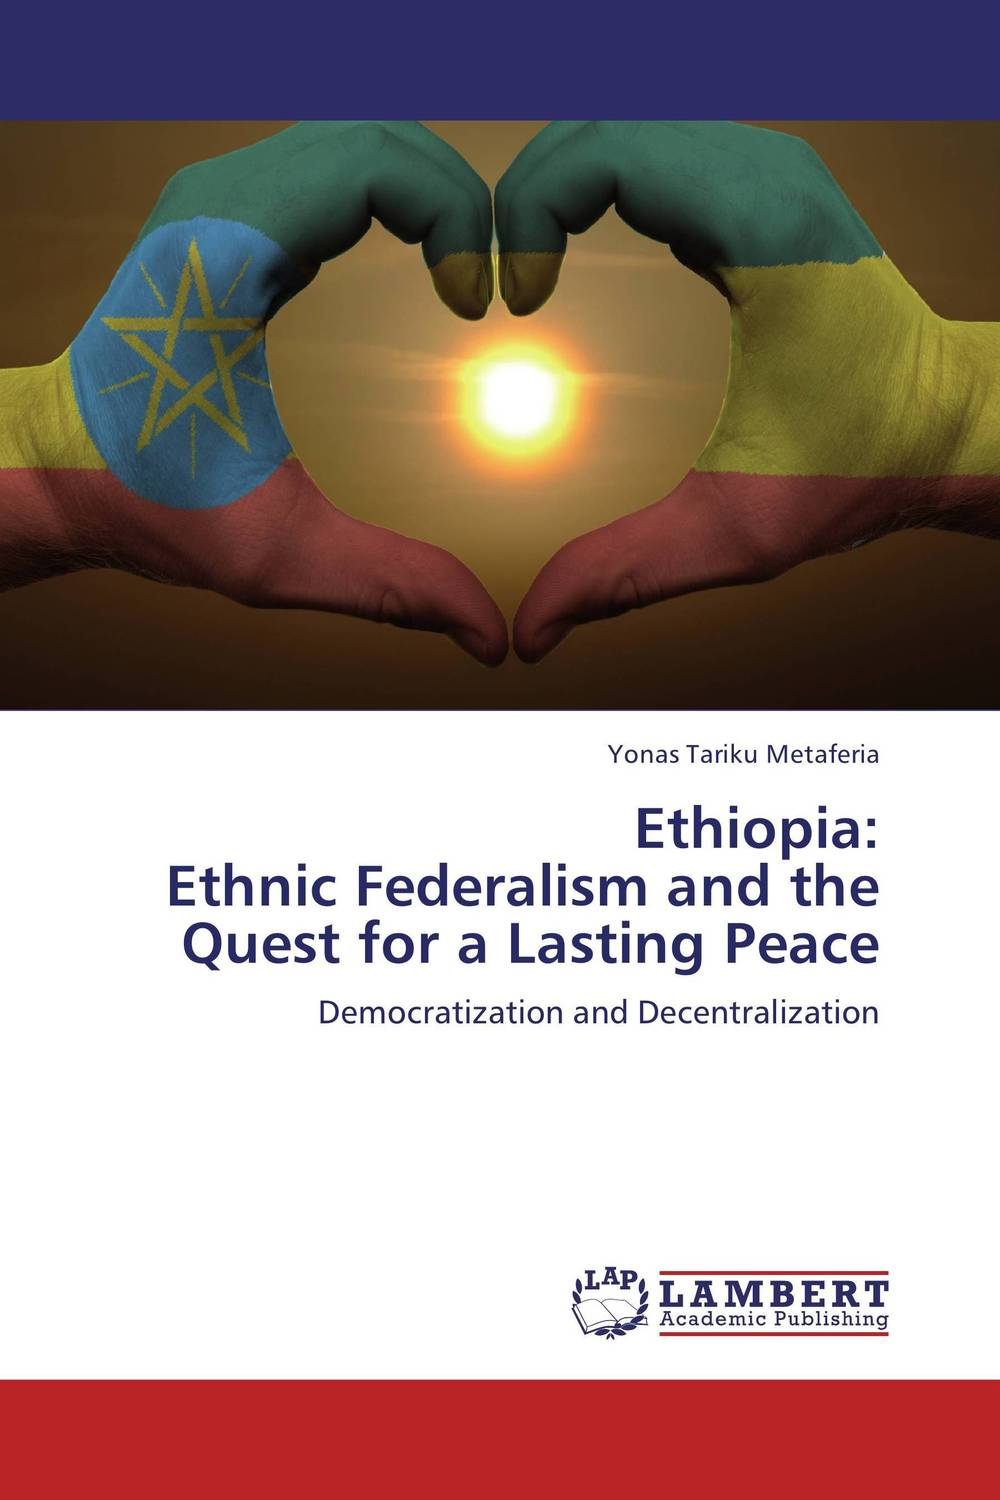 Ethiopia: Ethnic Federalism and the Quest for a Lasting Peace federalism and territorial cleavages